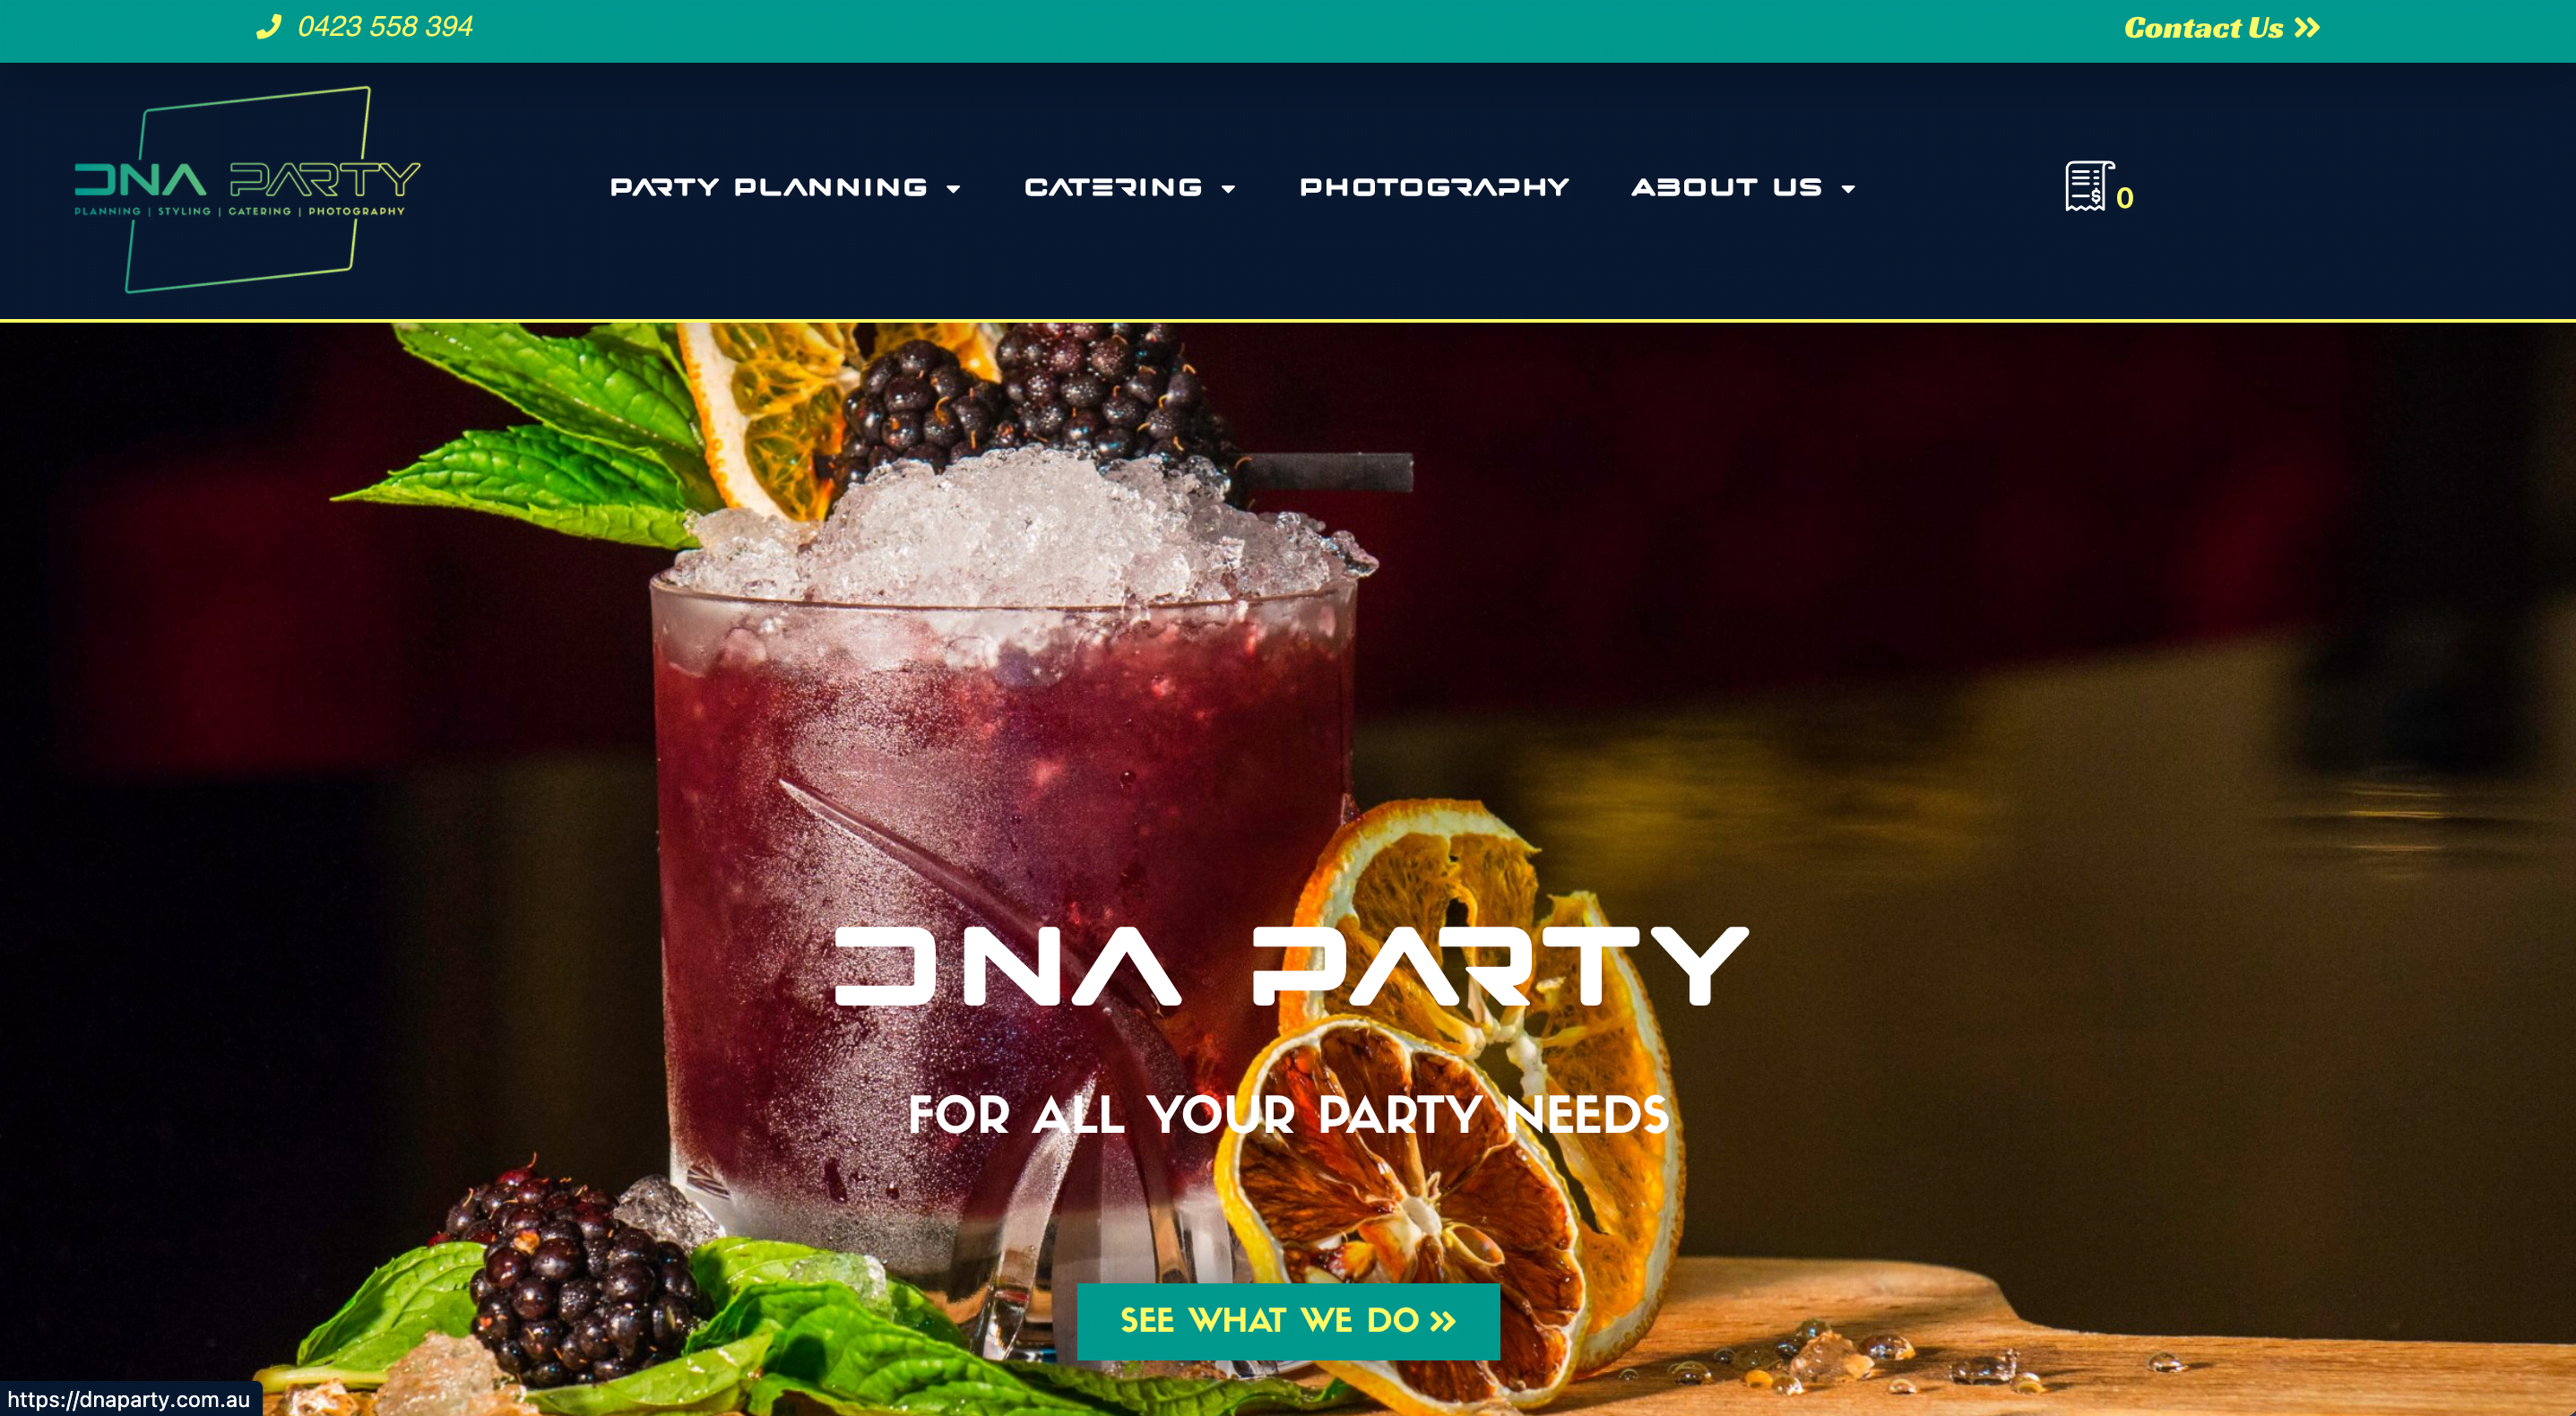 DNA Party